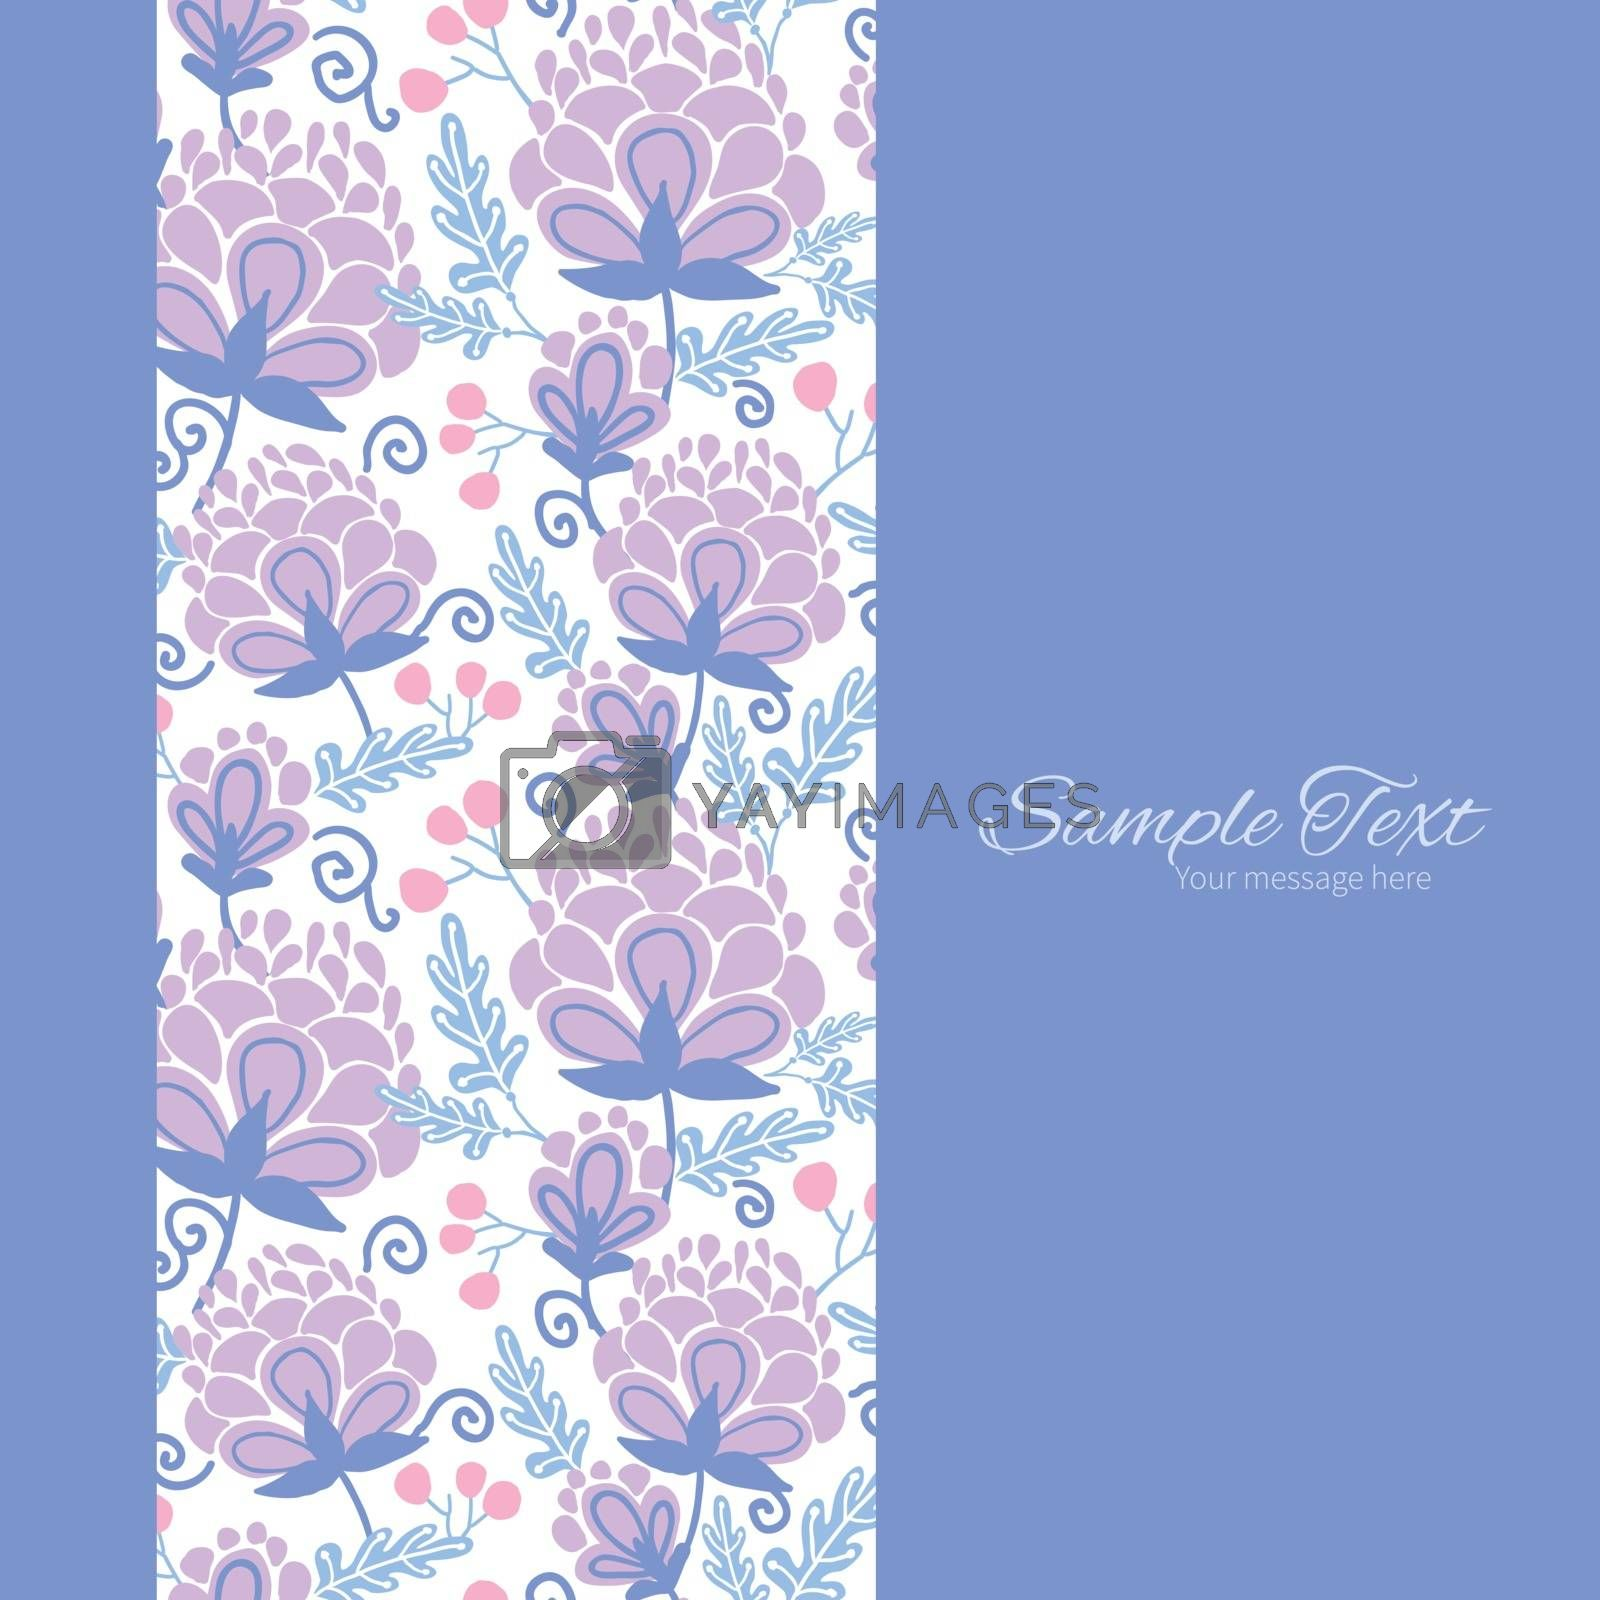 Vector soft purple flowers vertical frame seamless pattern background graphic design